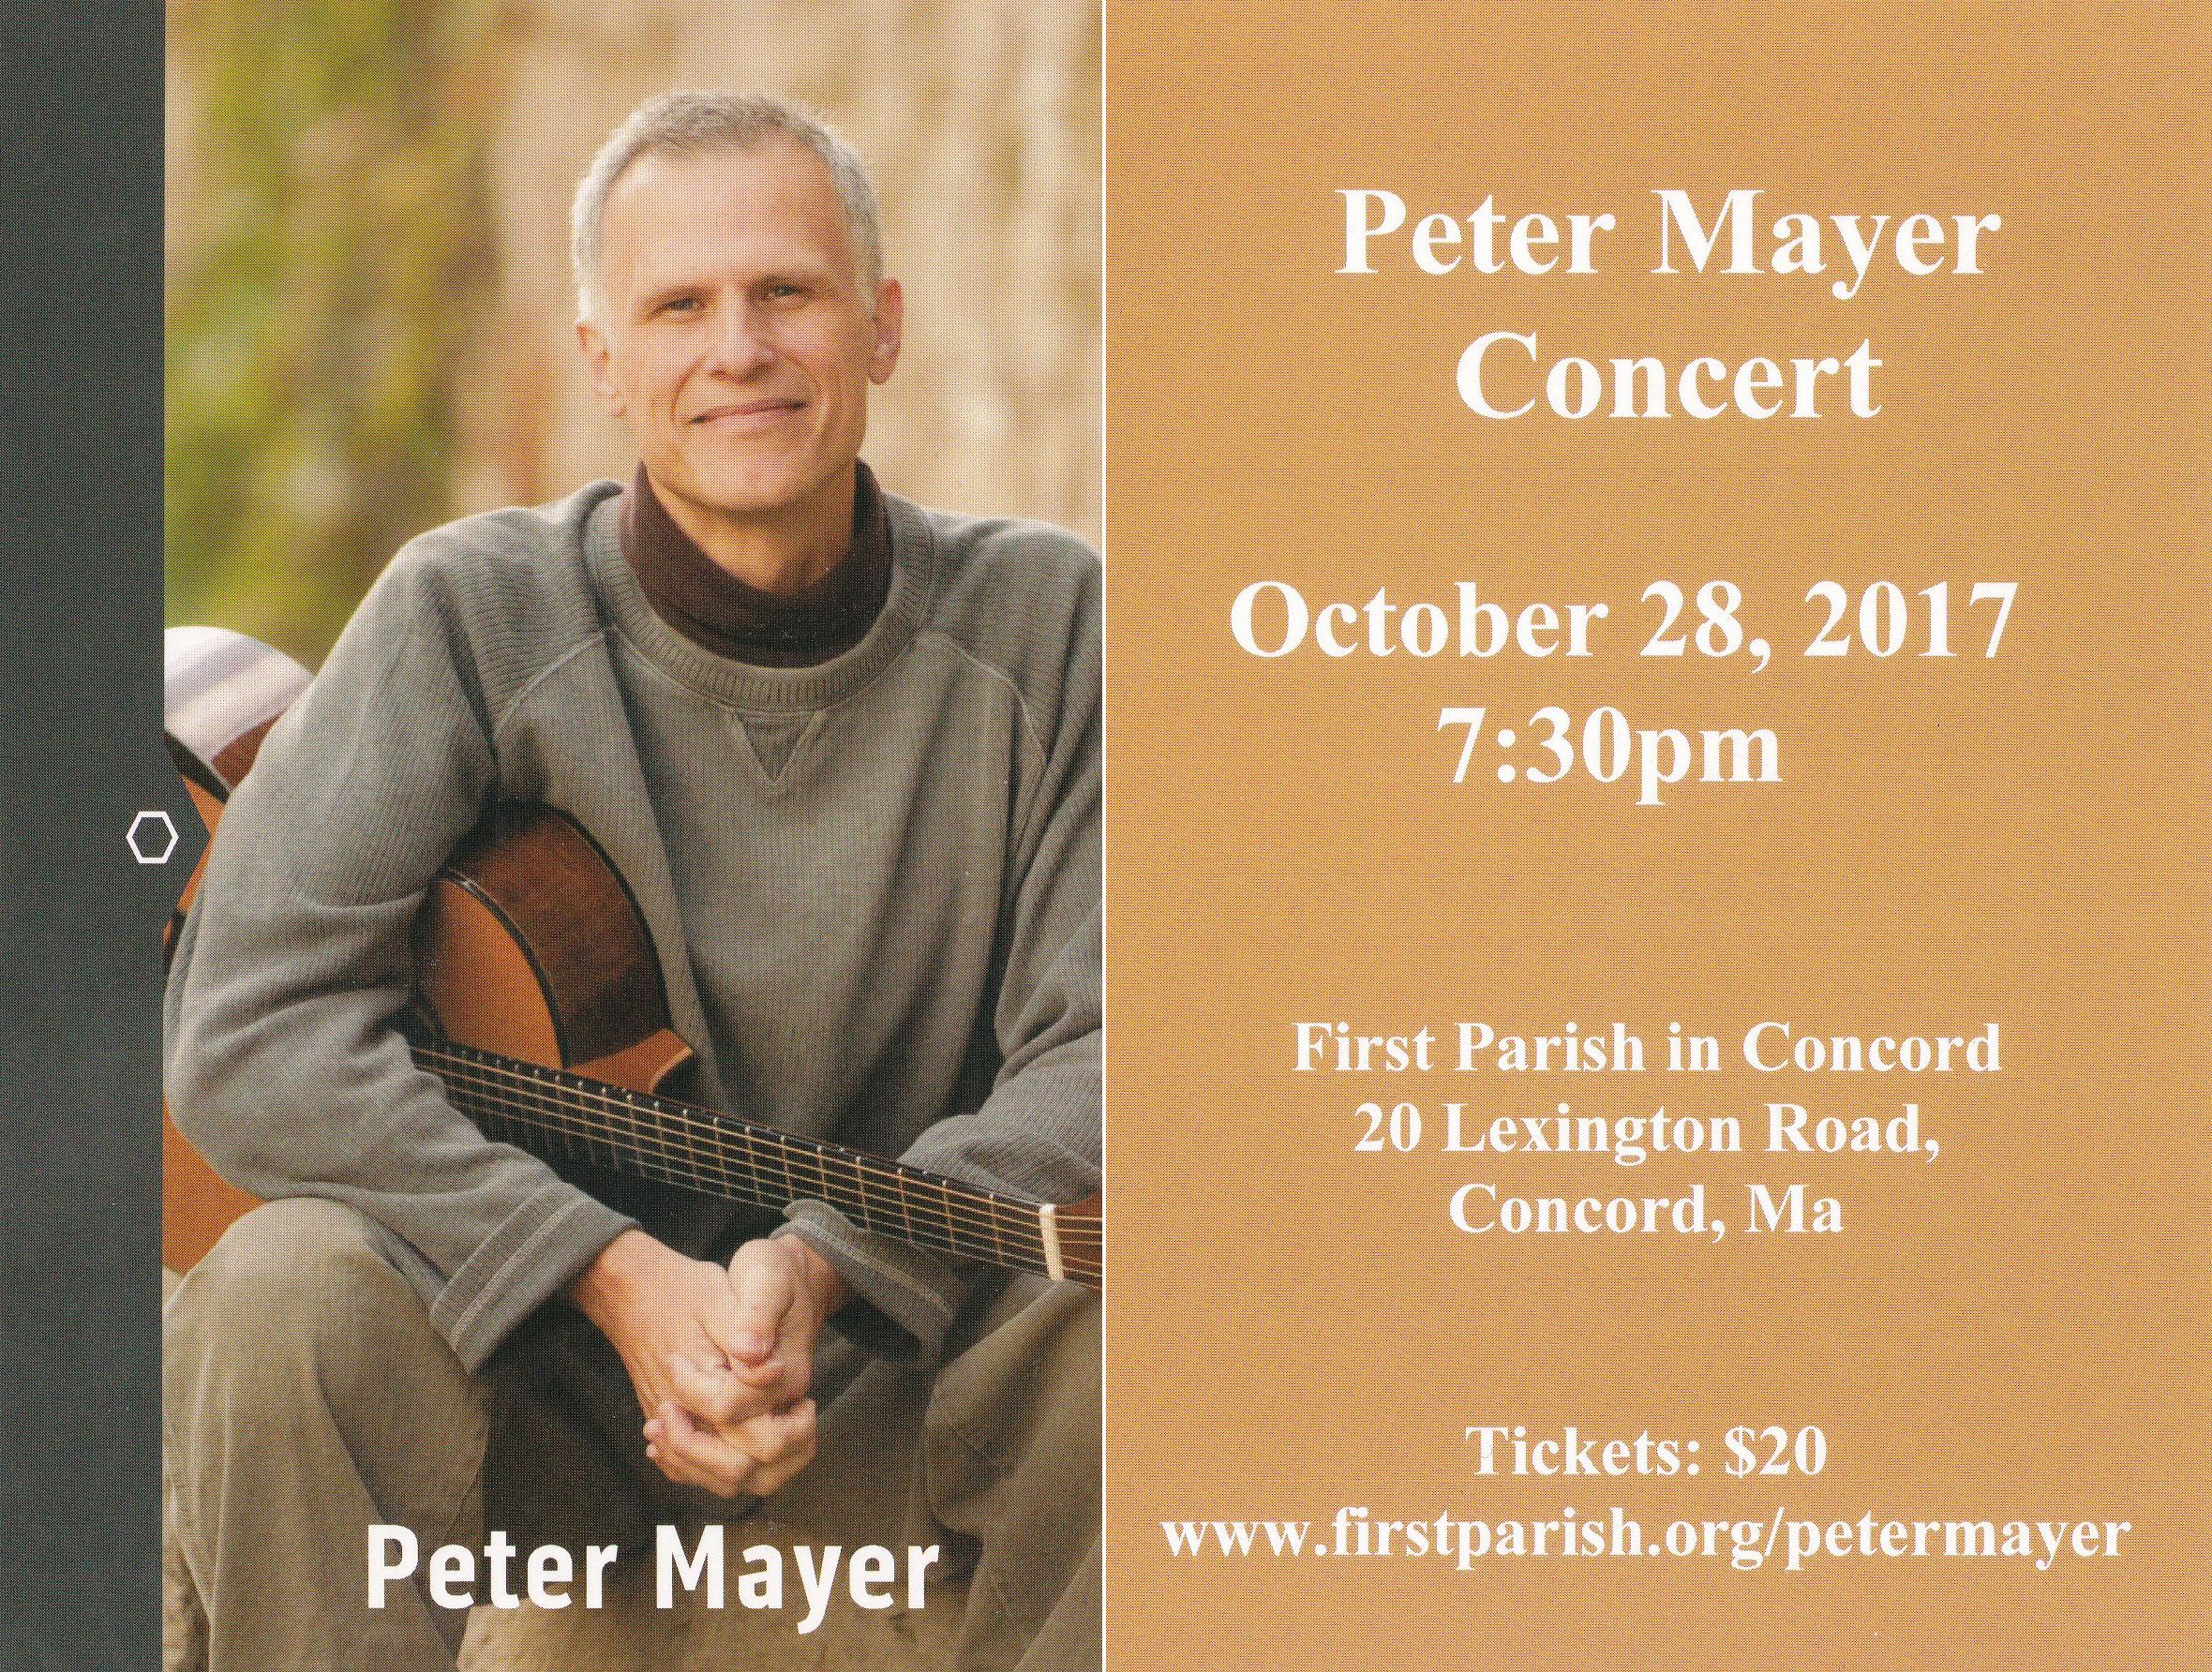 Peter Meyer Concert